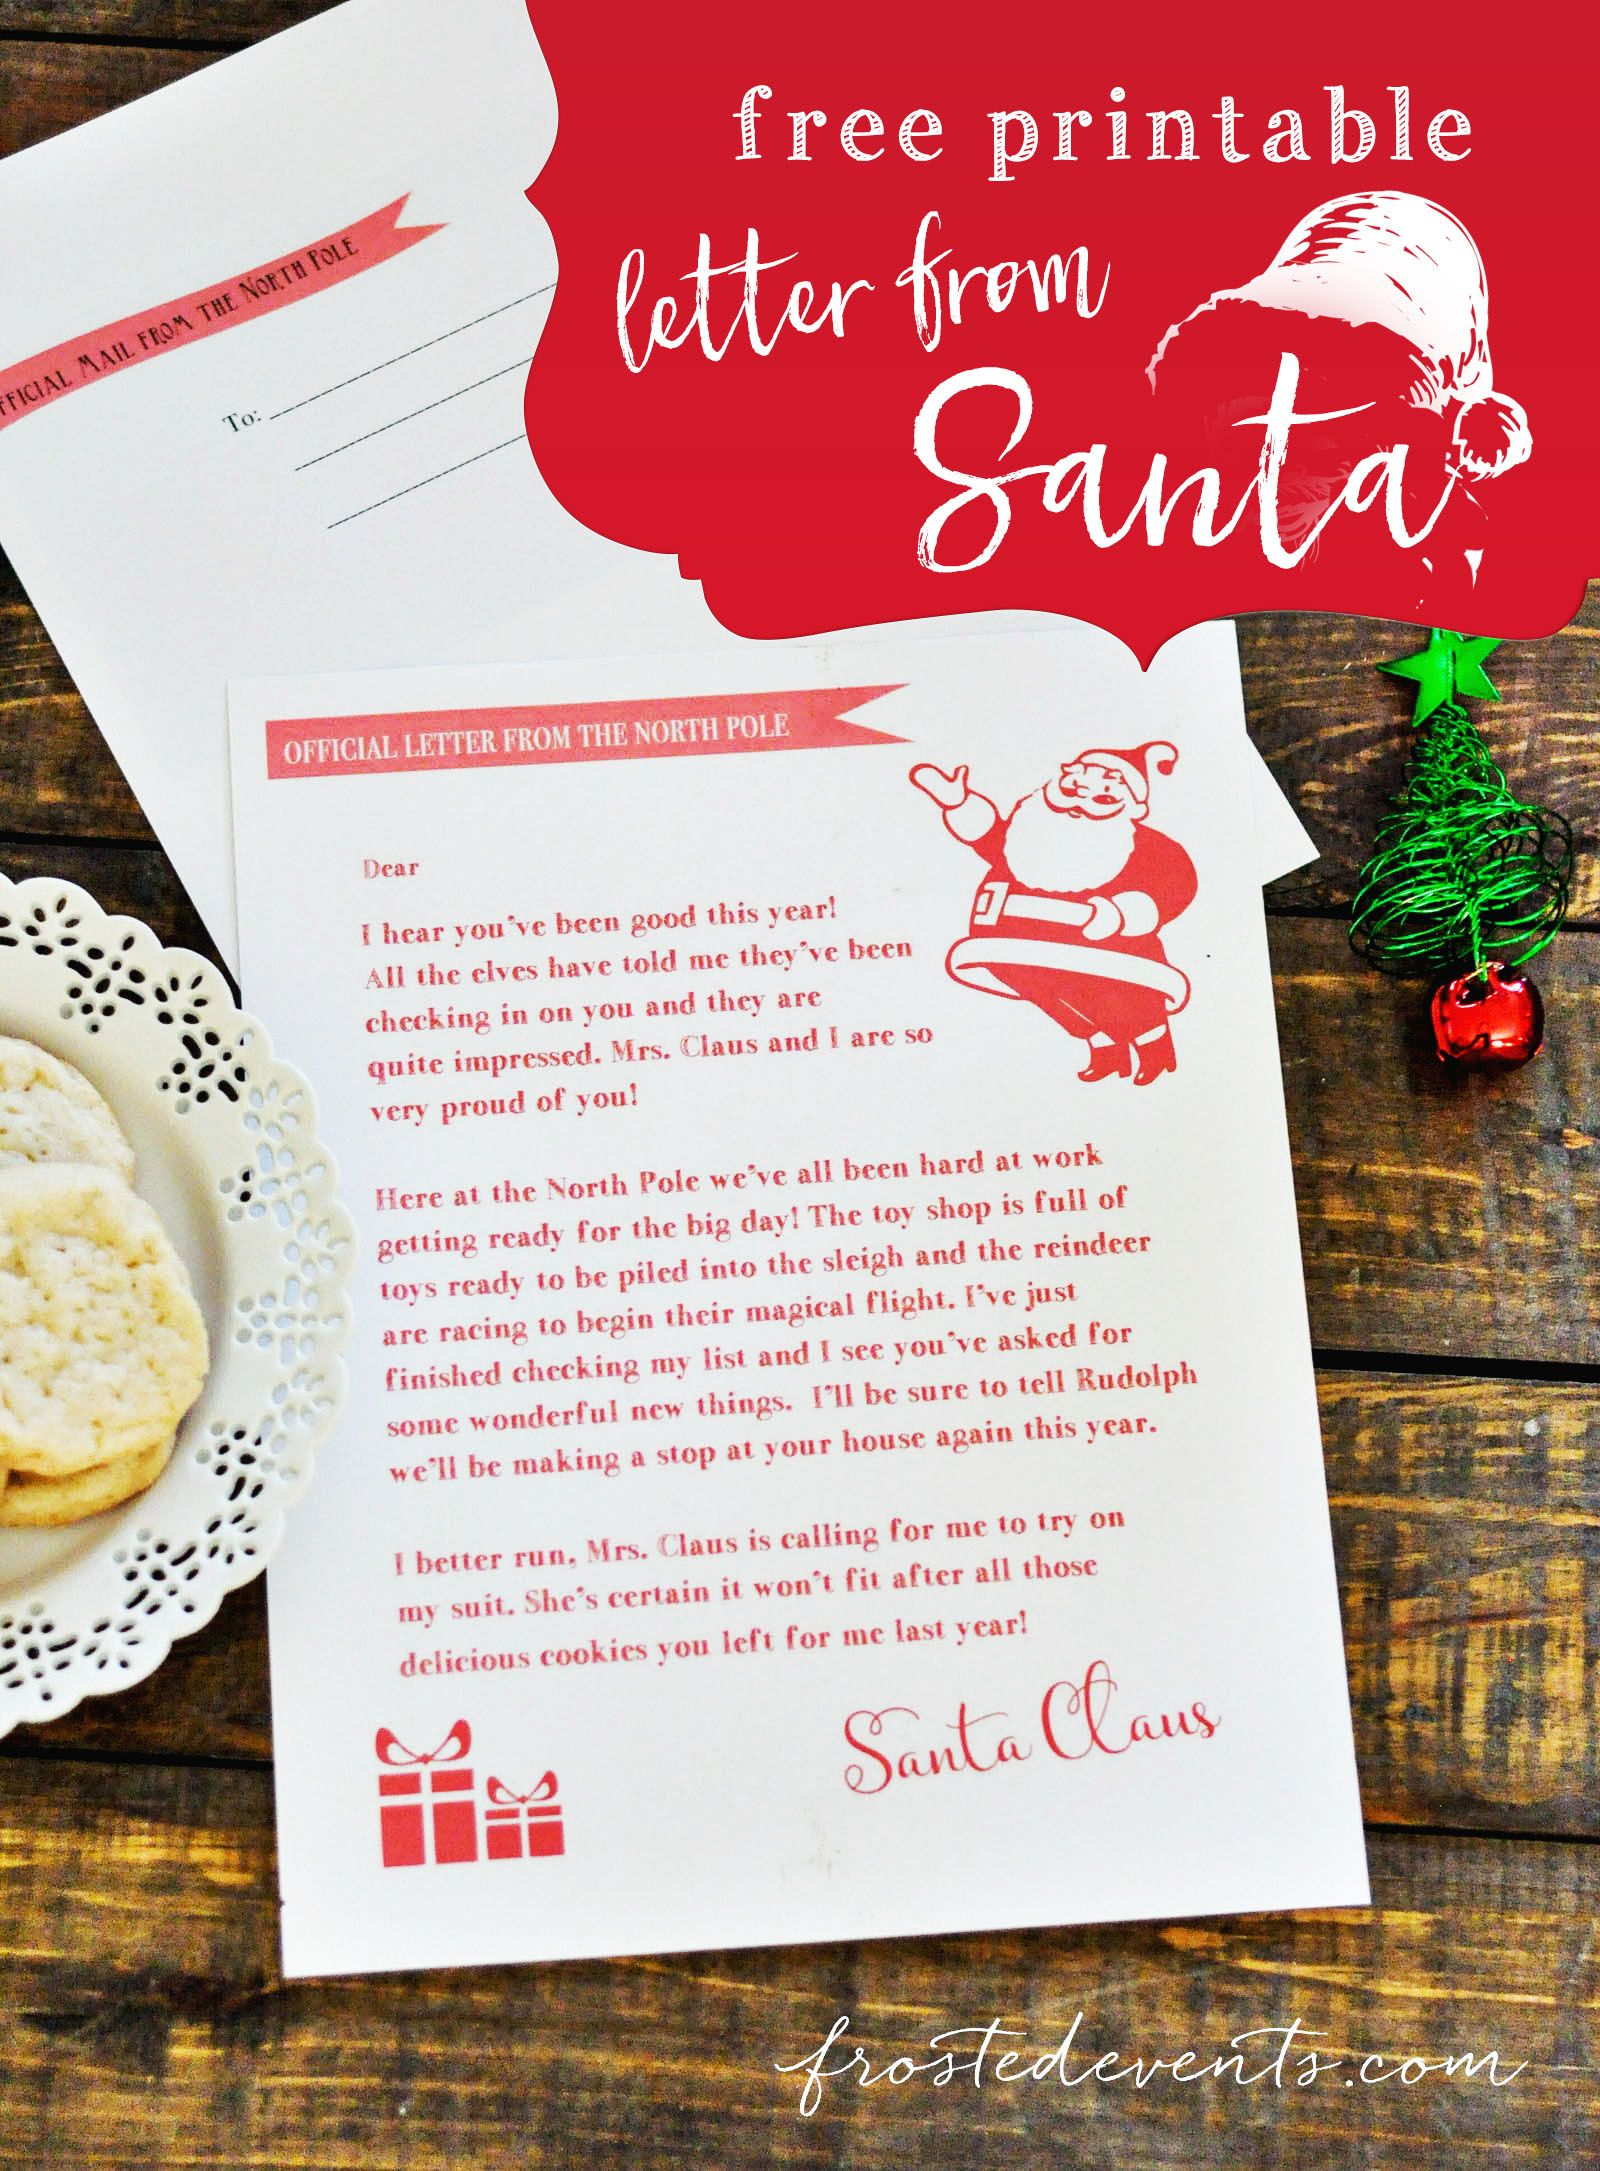 Grab this Free Printable Letter from Santa Santa letter